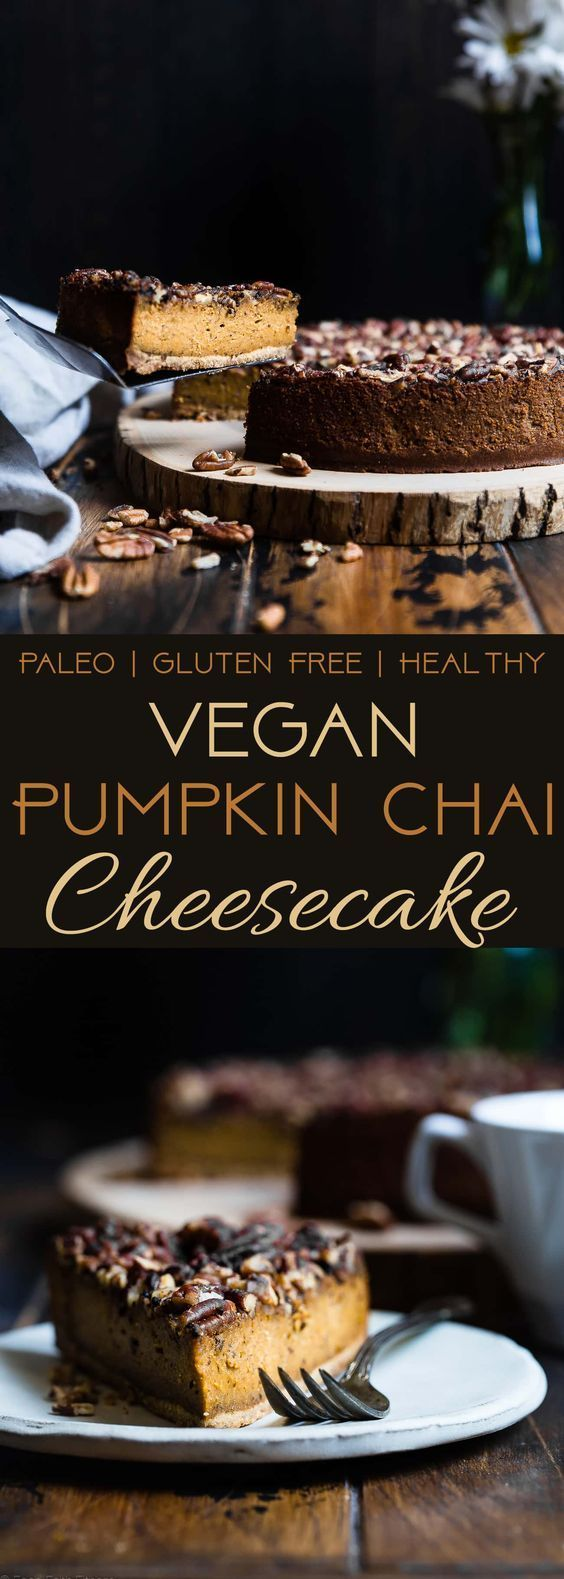 Vegan Pumpkin Chai Cheesecake - This dairy-free, gluten free pumpkin cheesecake is infused with spicy chai tea! It's an easy, healthy and paleo friendly show-stopping fall dessert! | Foodfaithfitness.com | @FoodFaithFit http://healthyquickly.com